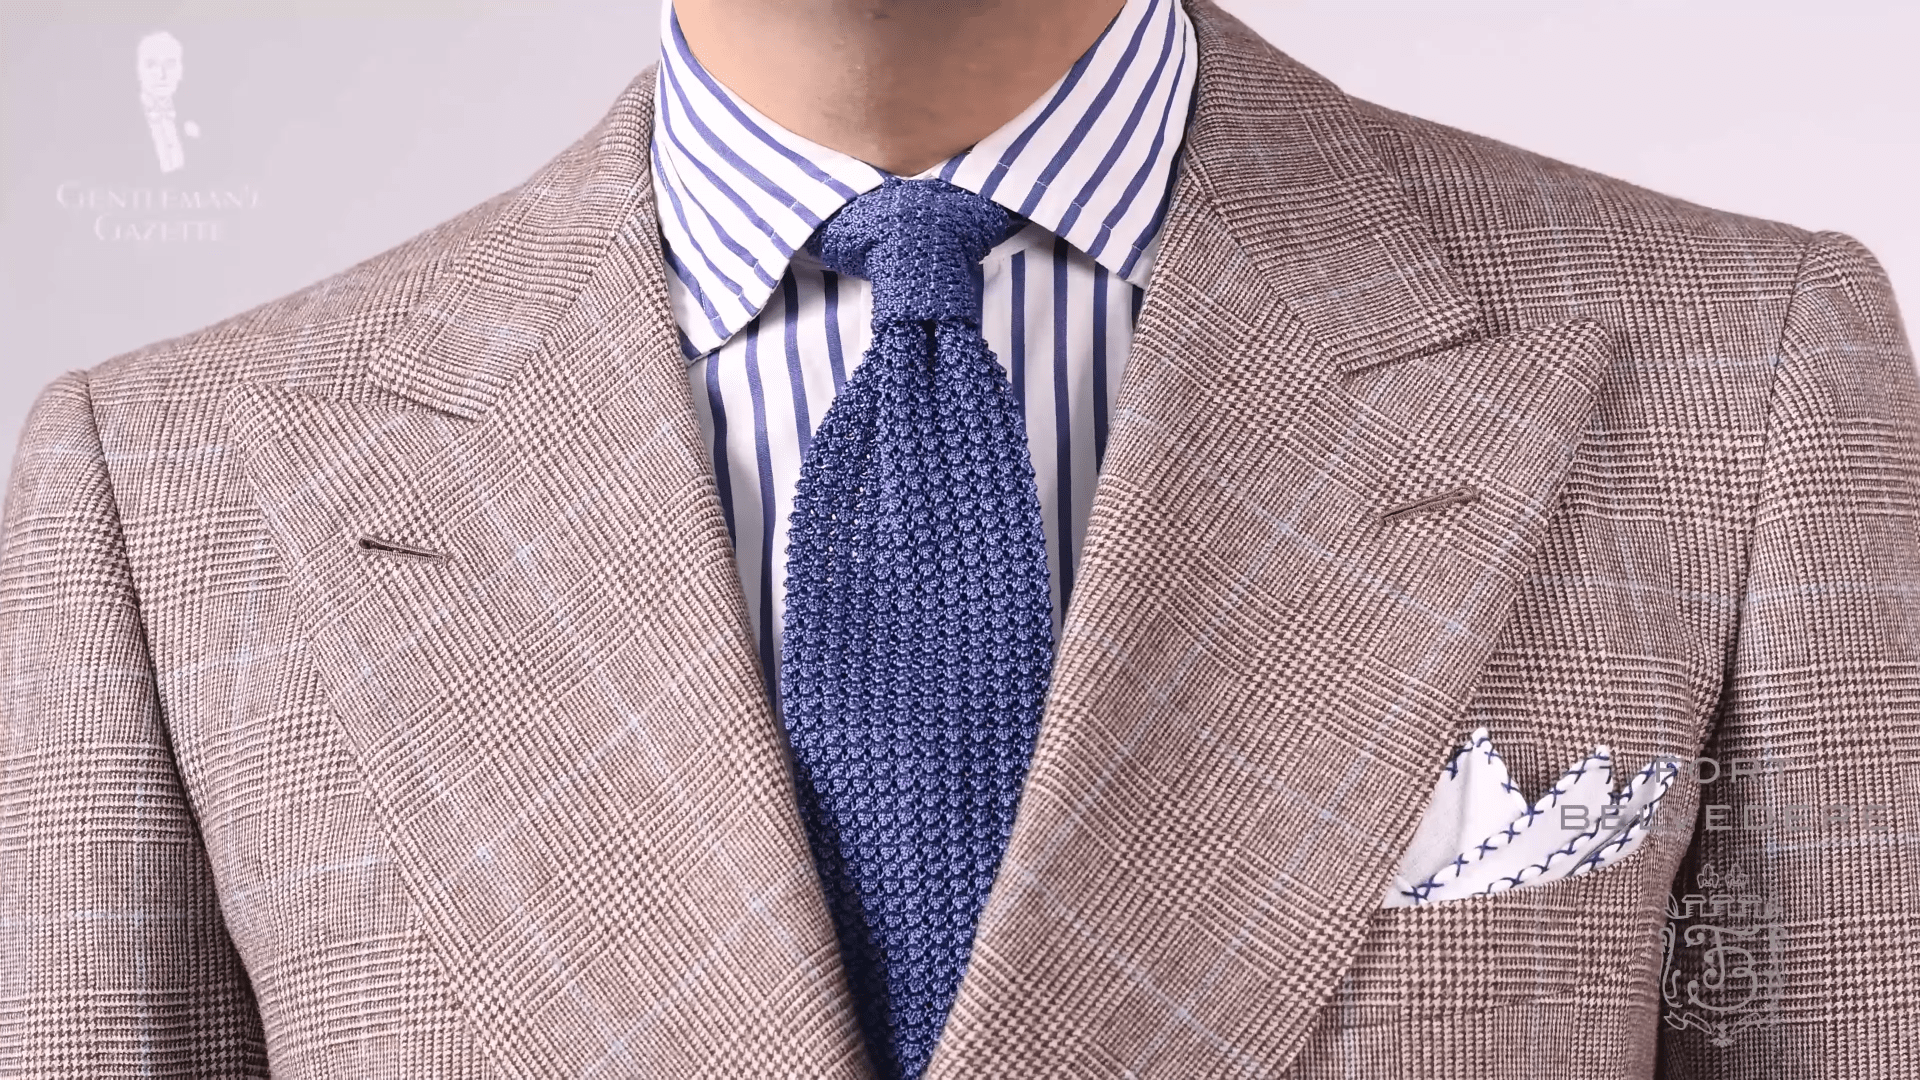 0eae16e15c783 Flannel Glenn plaid suit with striped shirt, solid blue knit tie, and blue  and